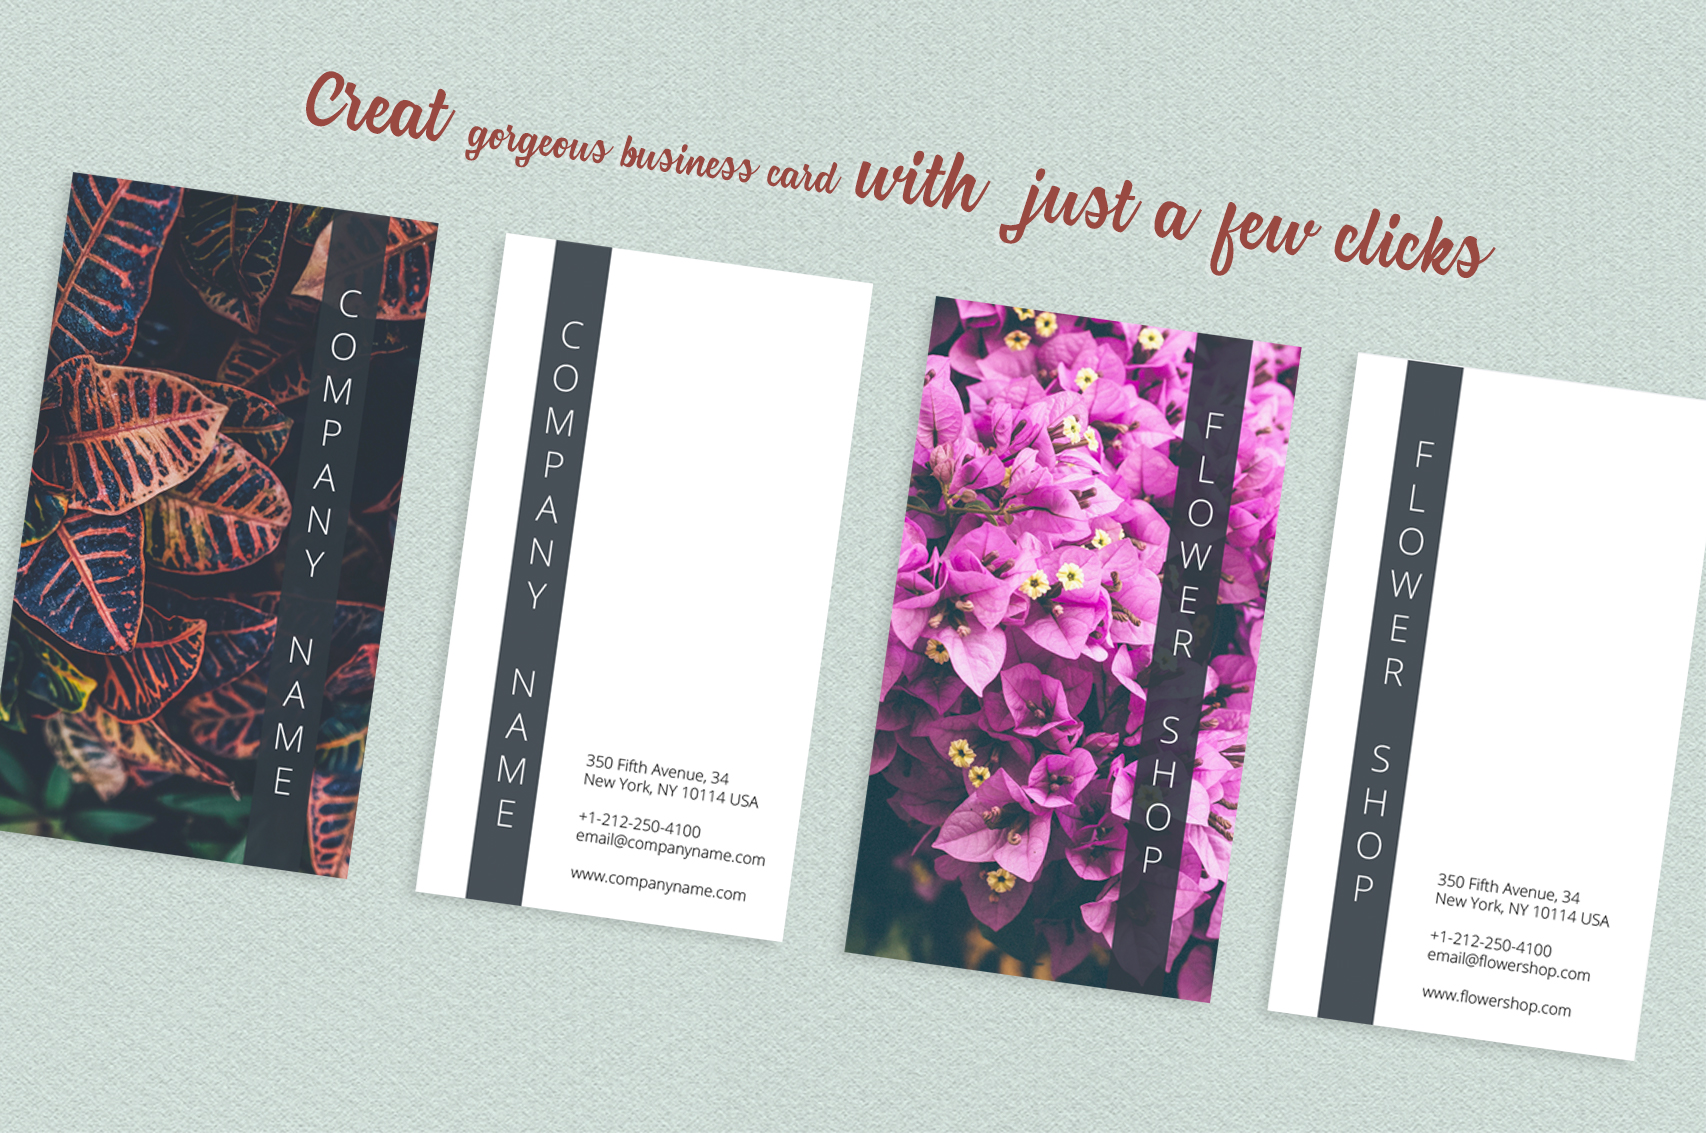 Asian Dream Business Card Template 2 example image 4